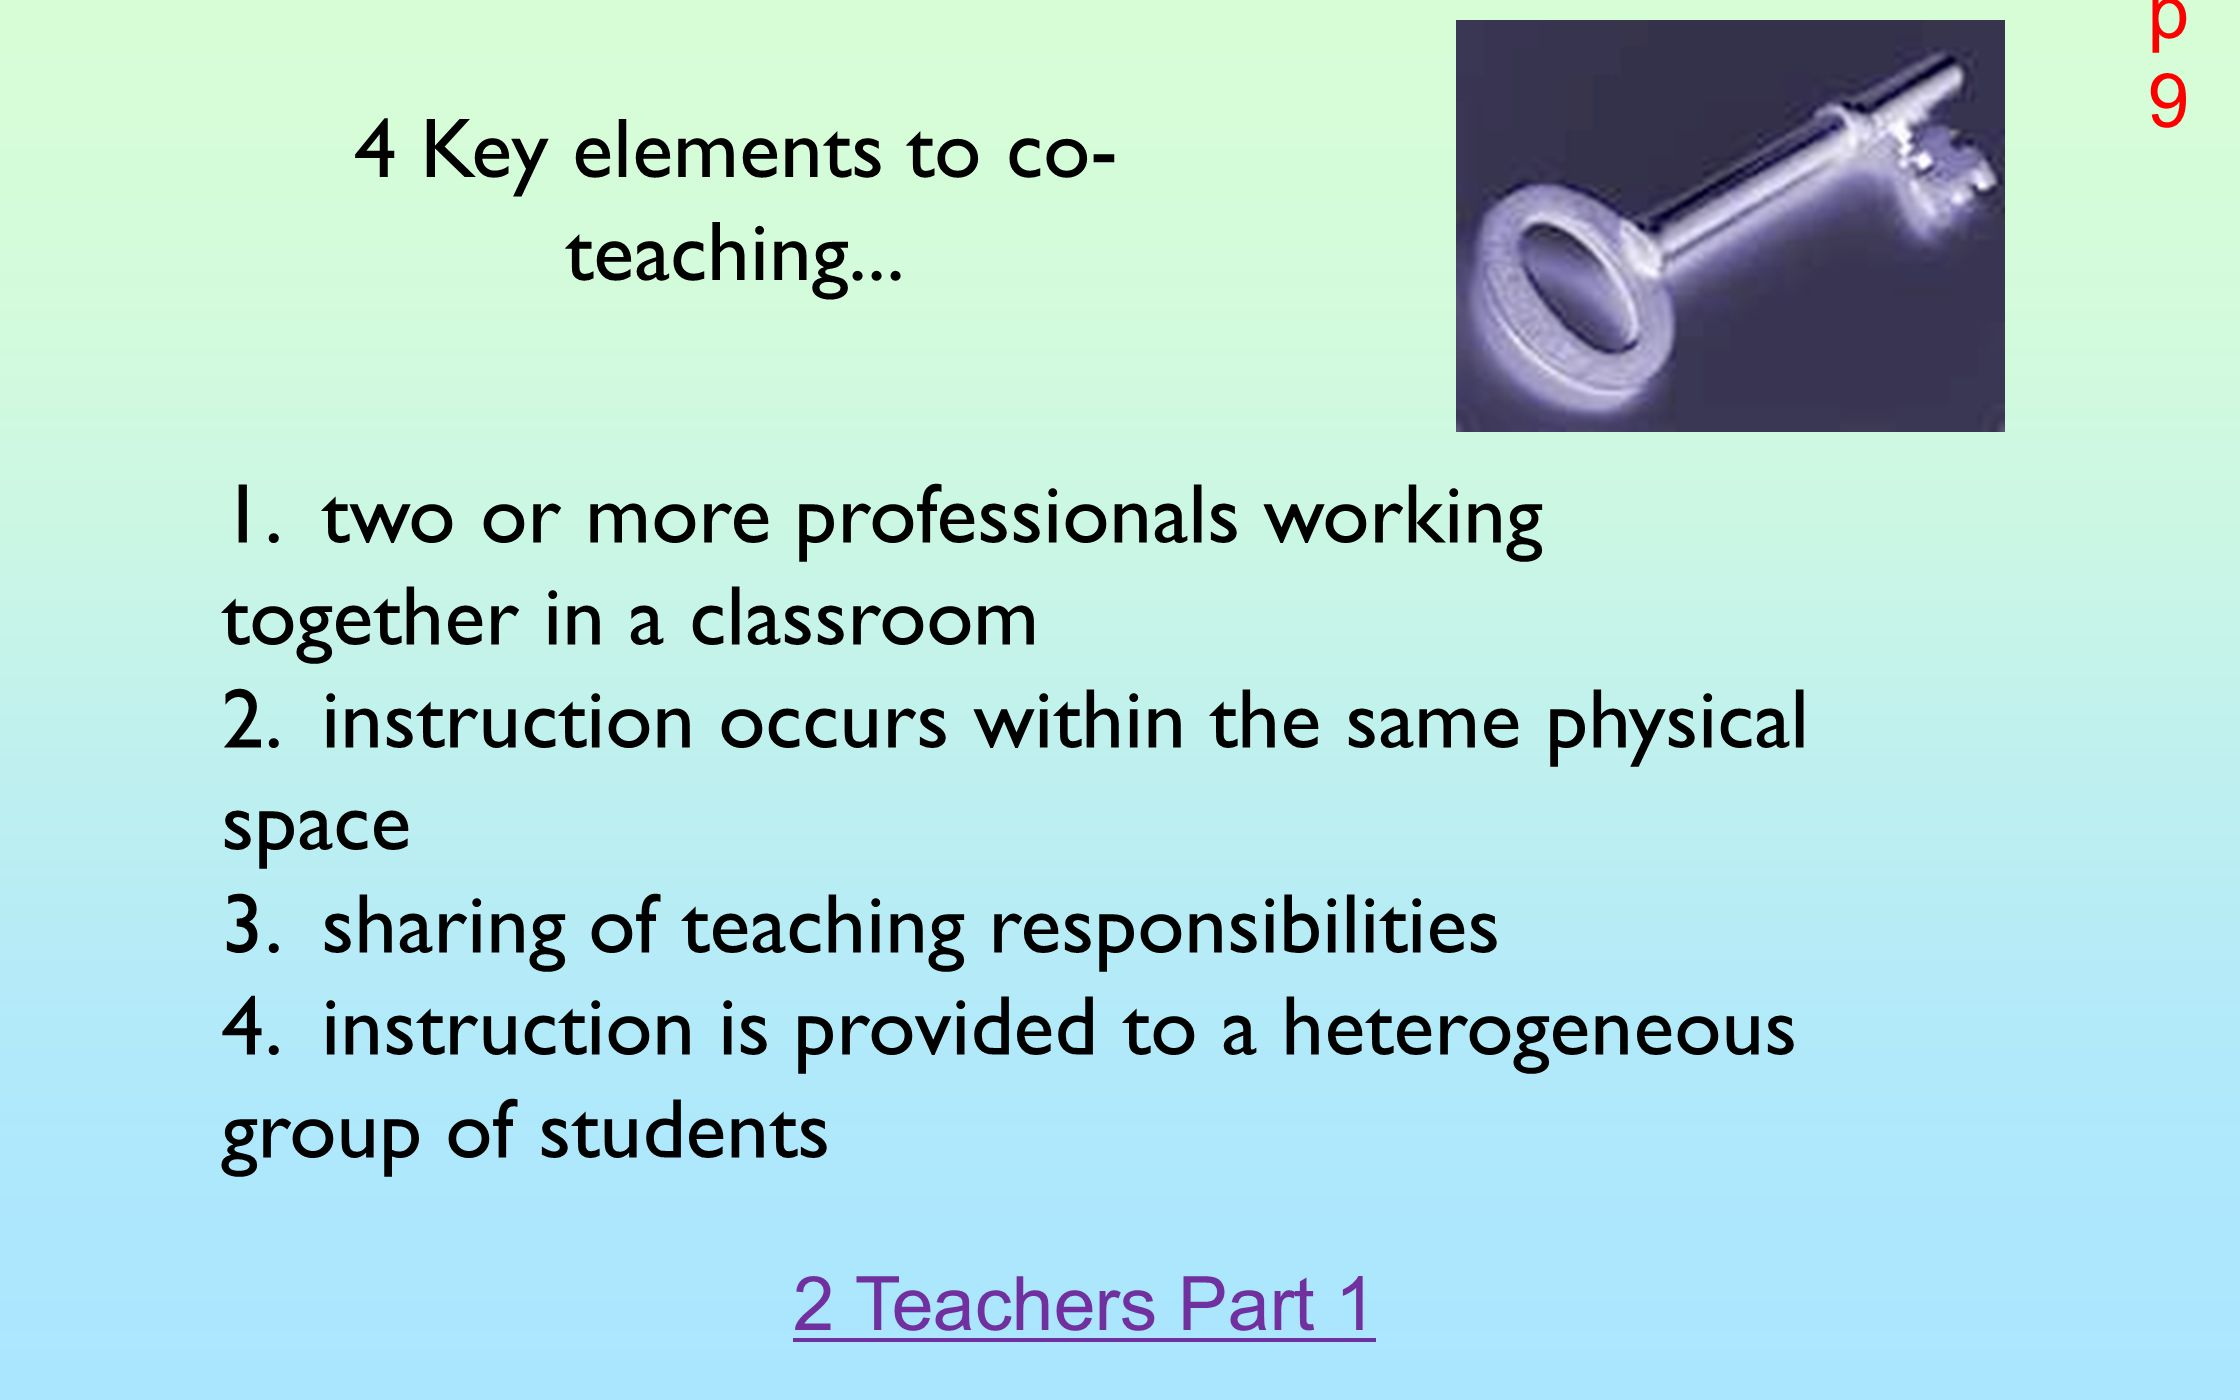 4 Key elements to co-teaching...